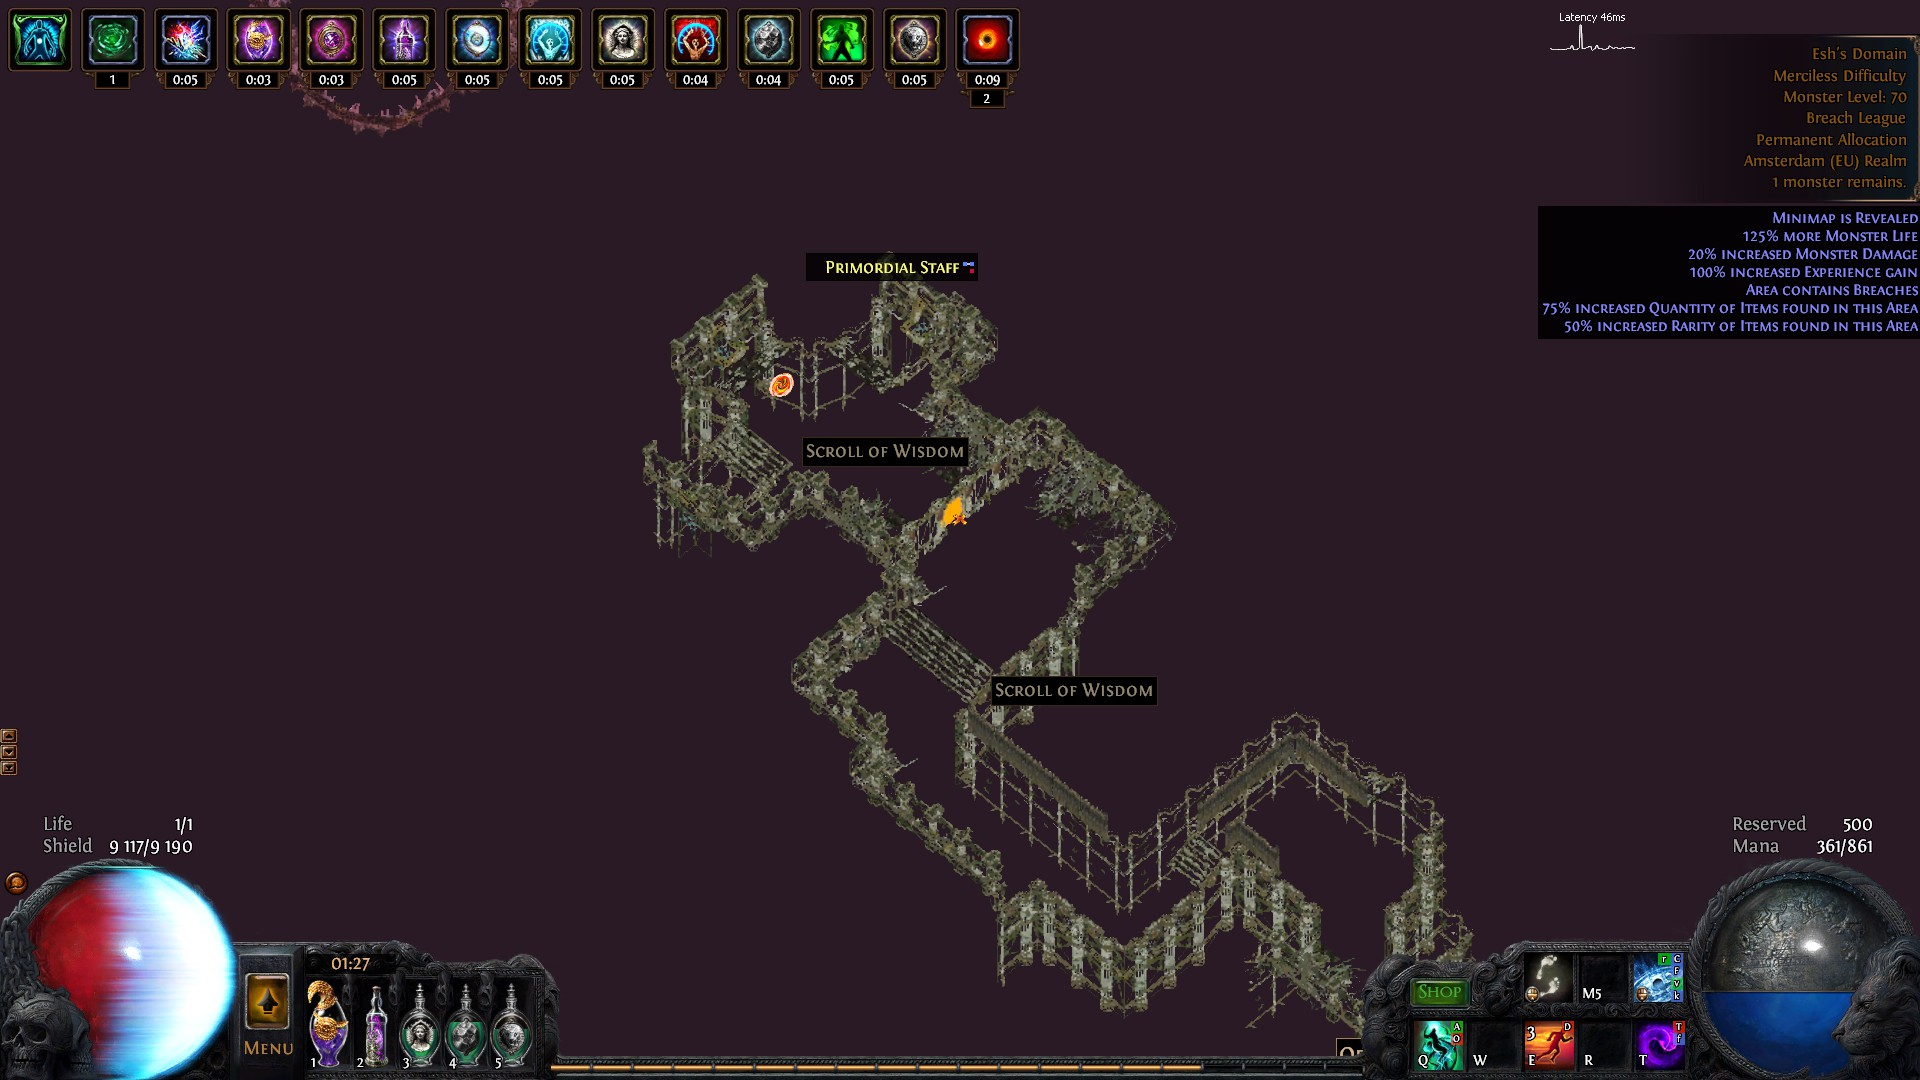 Forum - Bug Reports - Graphical Issue - Path of Exile